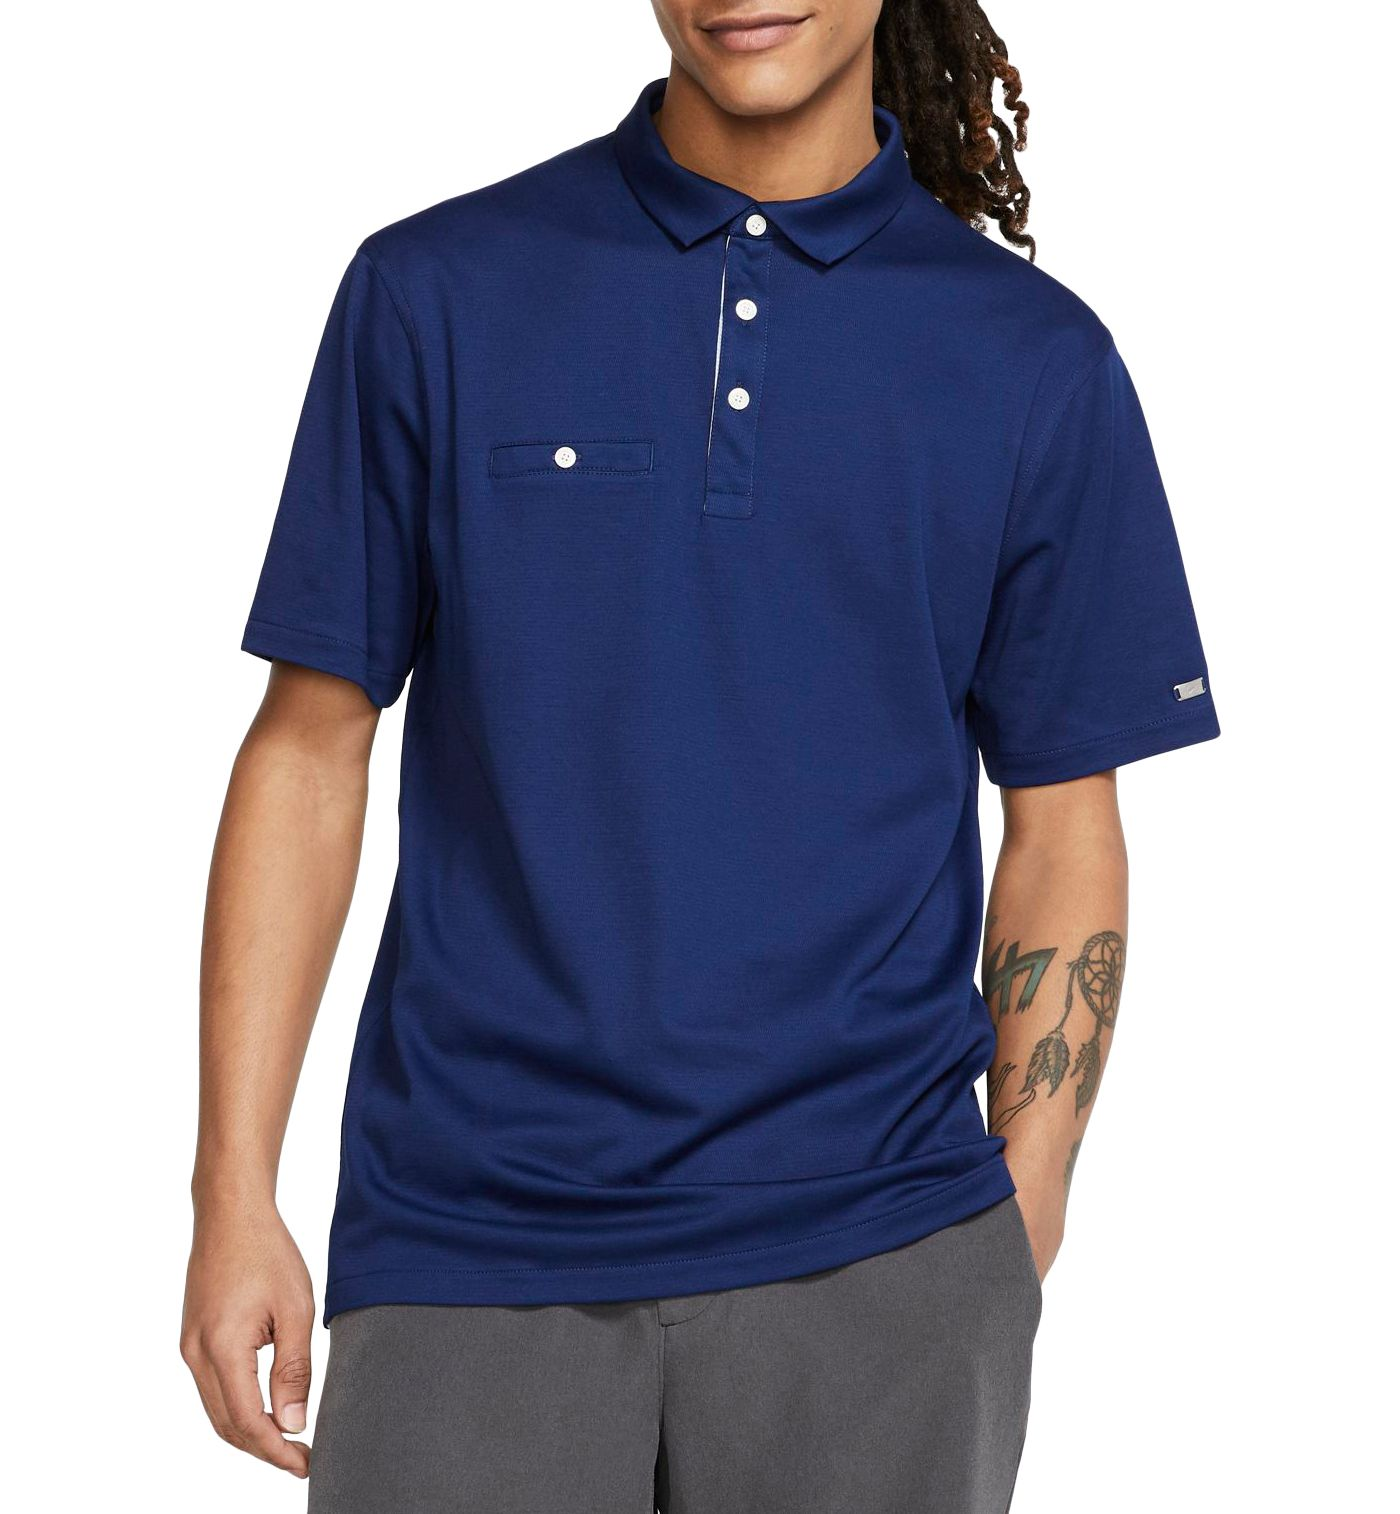 Nike Men's Solid Player Golf Polo